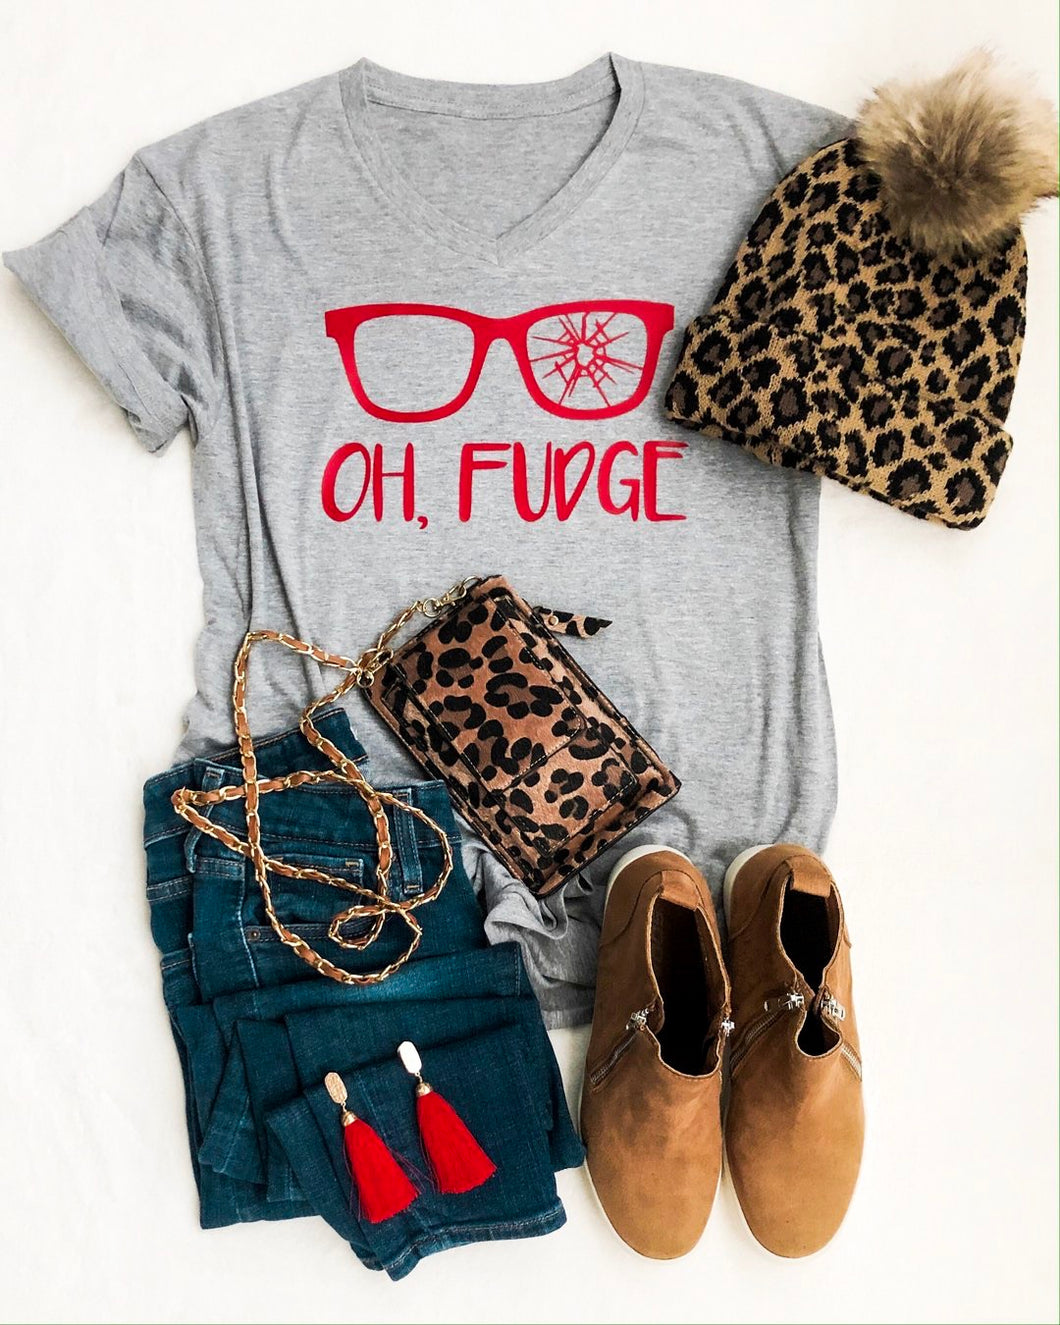 Oh, Fudge T-shirt